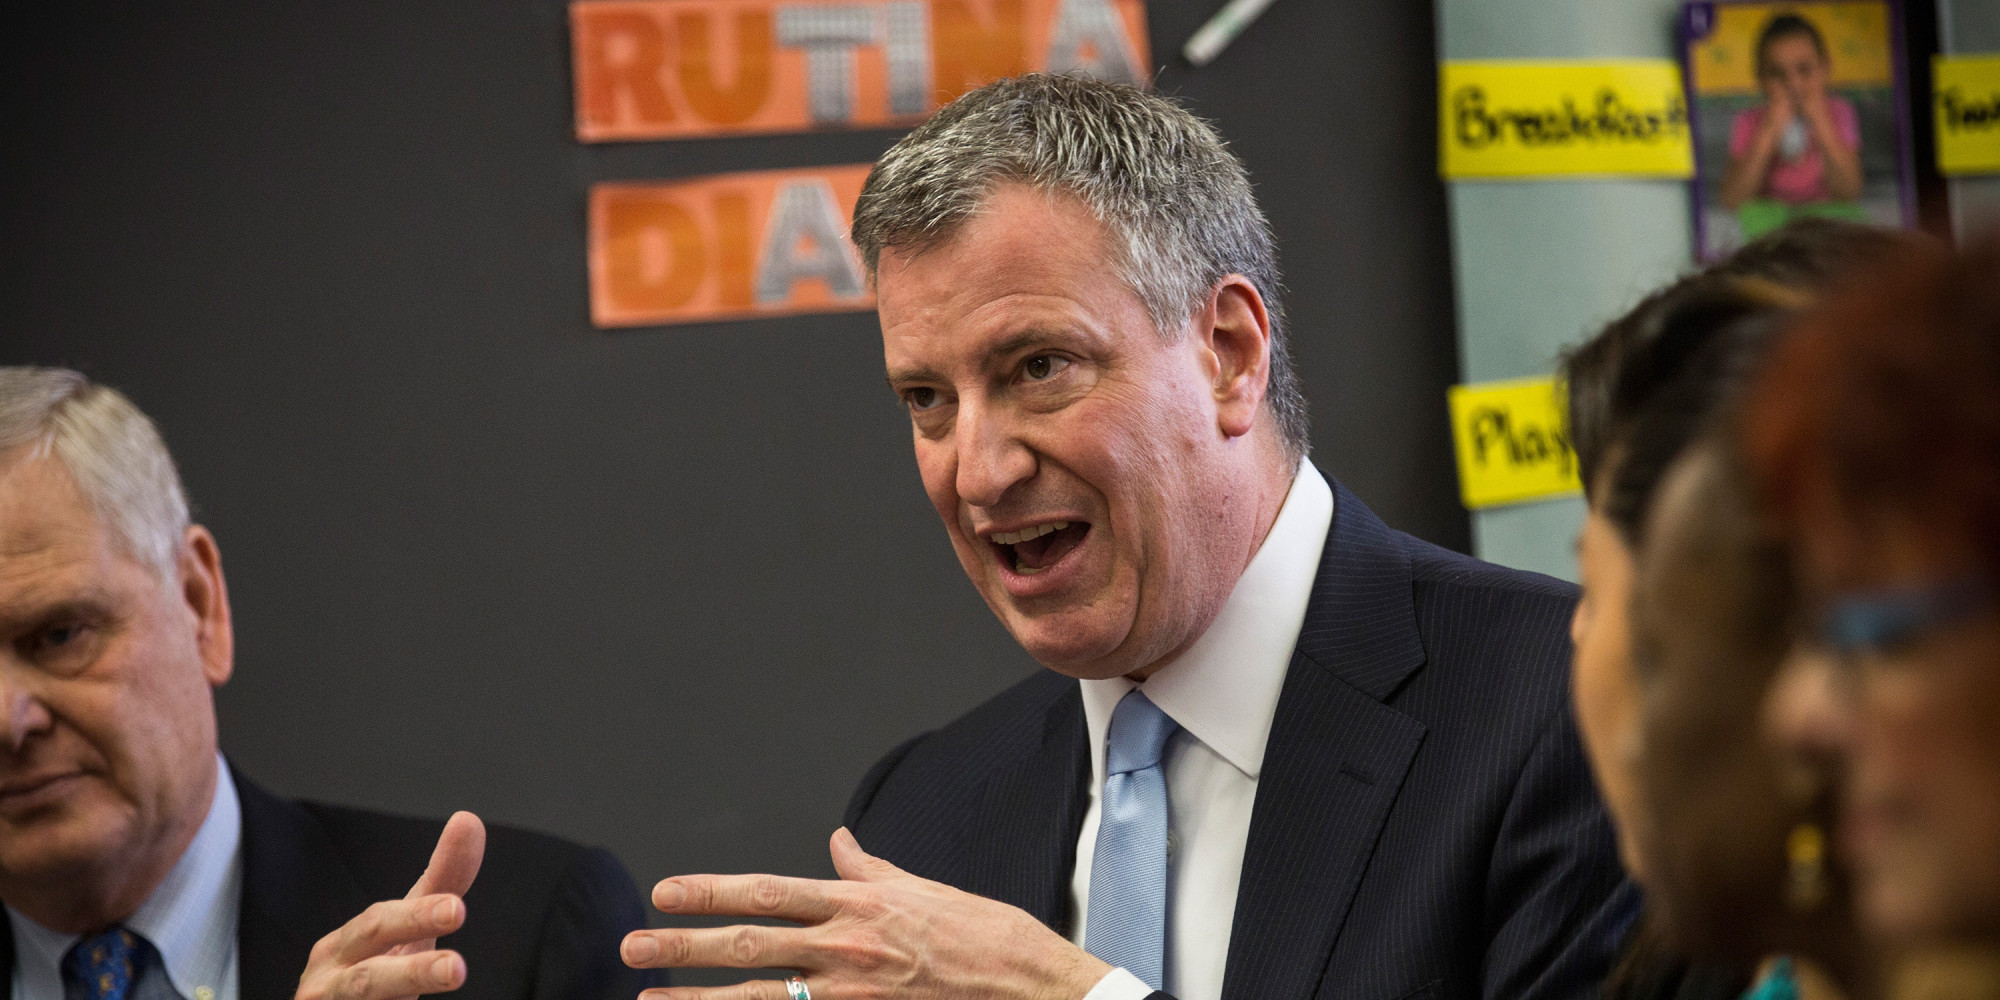 Bill De Blasio Wants To See A Vision From Hillary Clinton Before Endorsing He